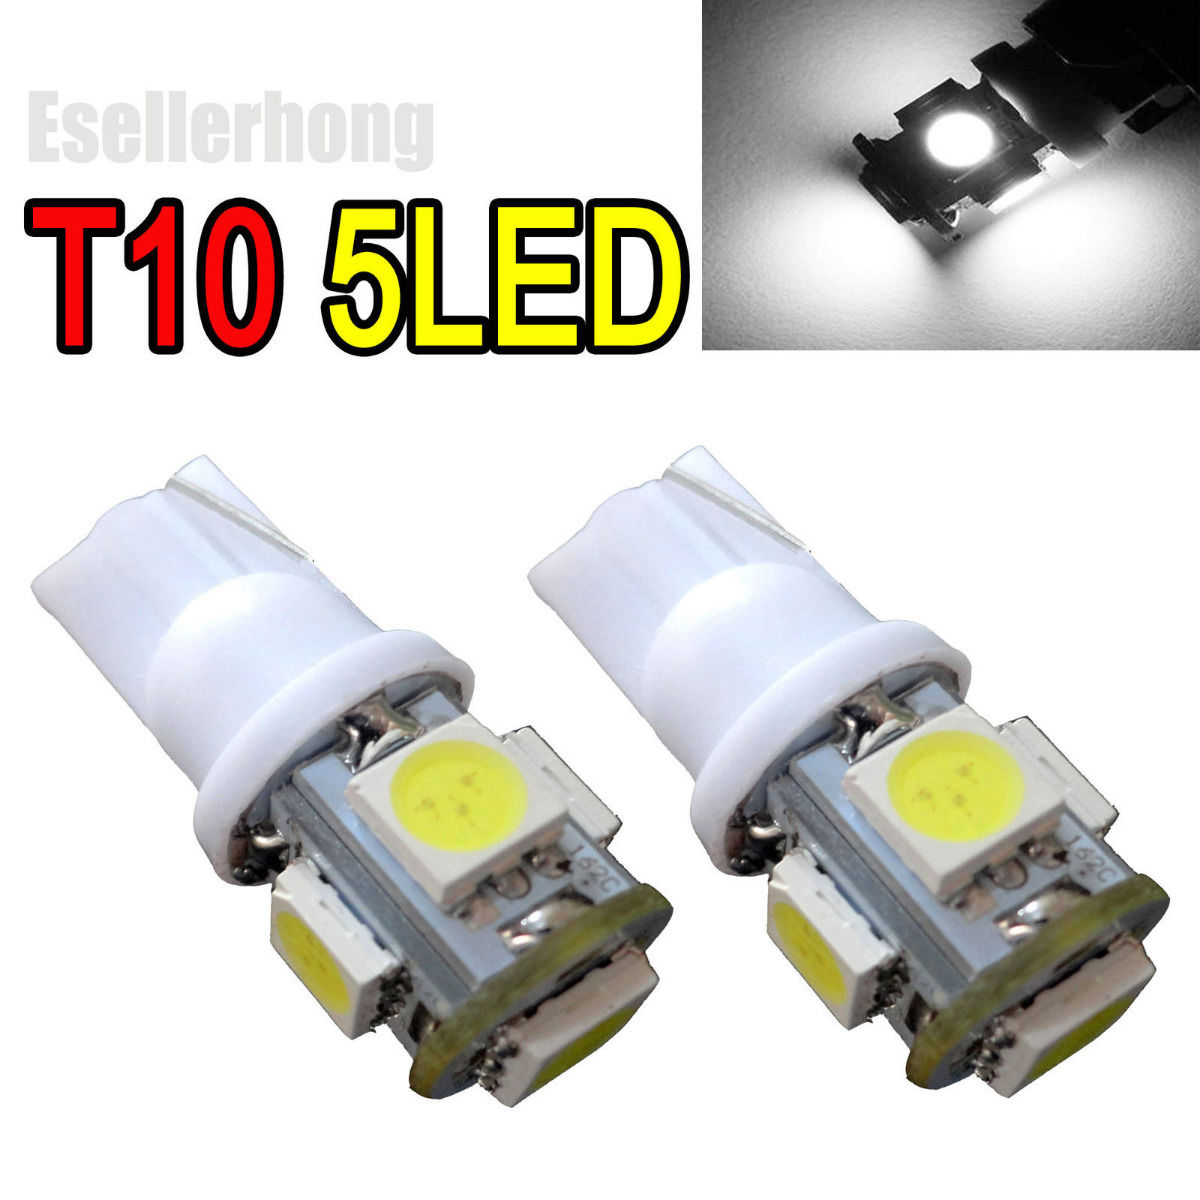 2 X White 5-SMD T10 T15 555 2521 161 147 2825 168 LED Light Bulb